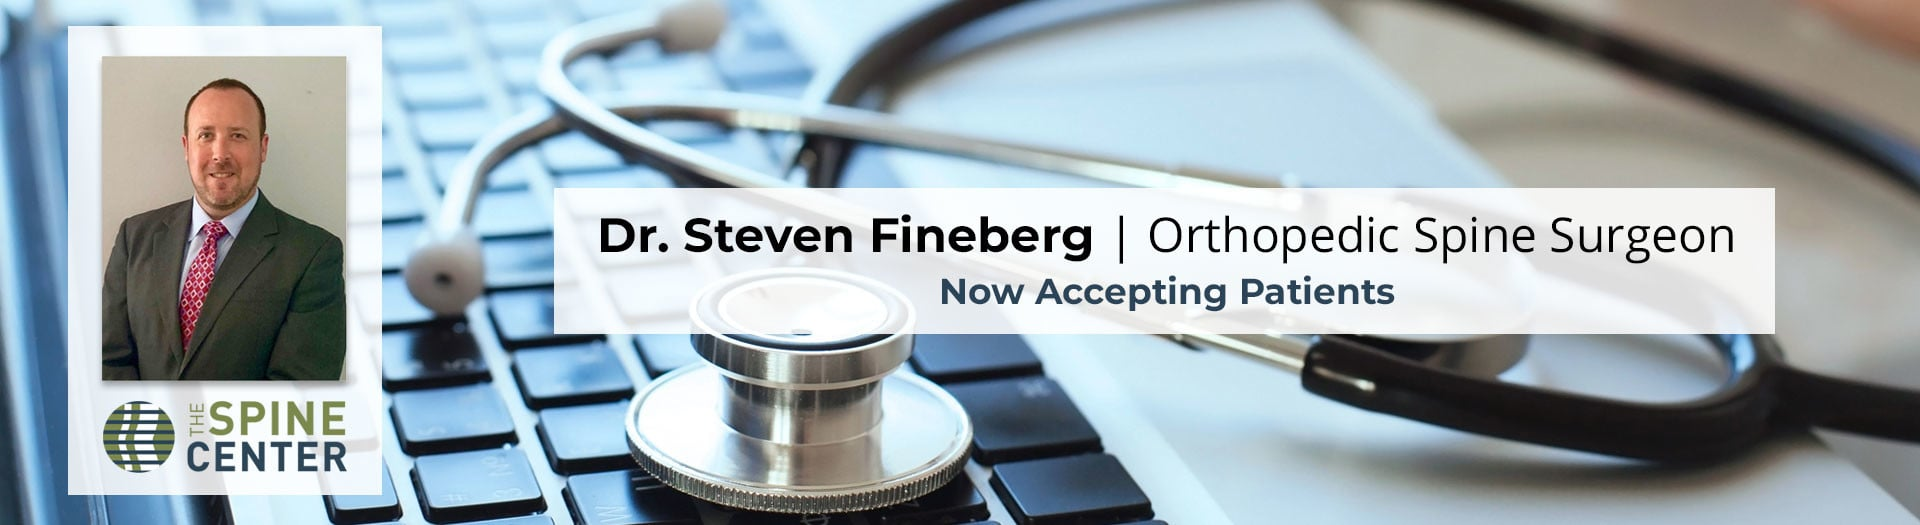 Dr. Fineberg now accepting new patients at The Spine Center